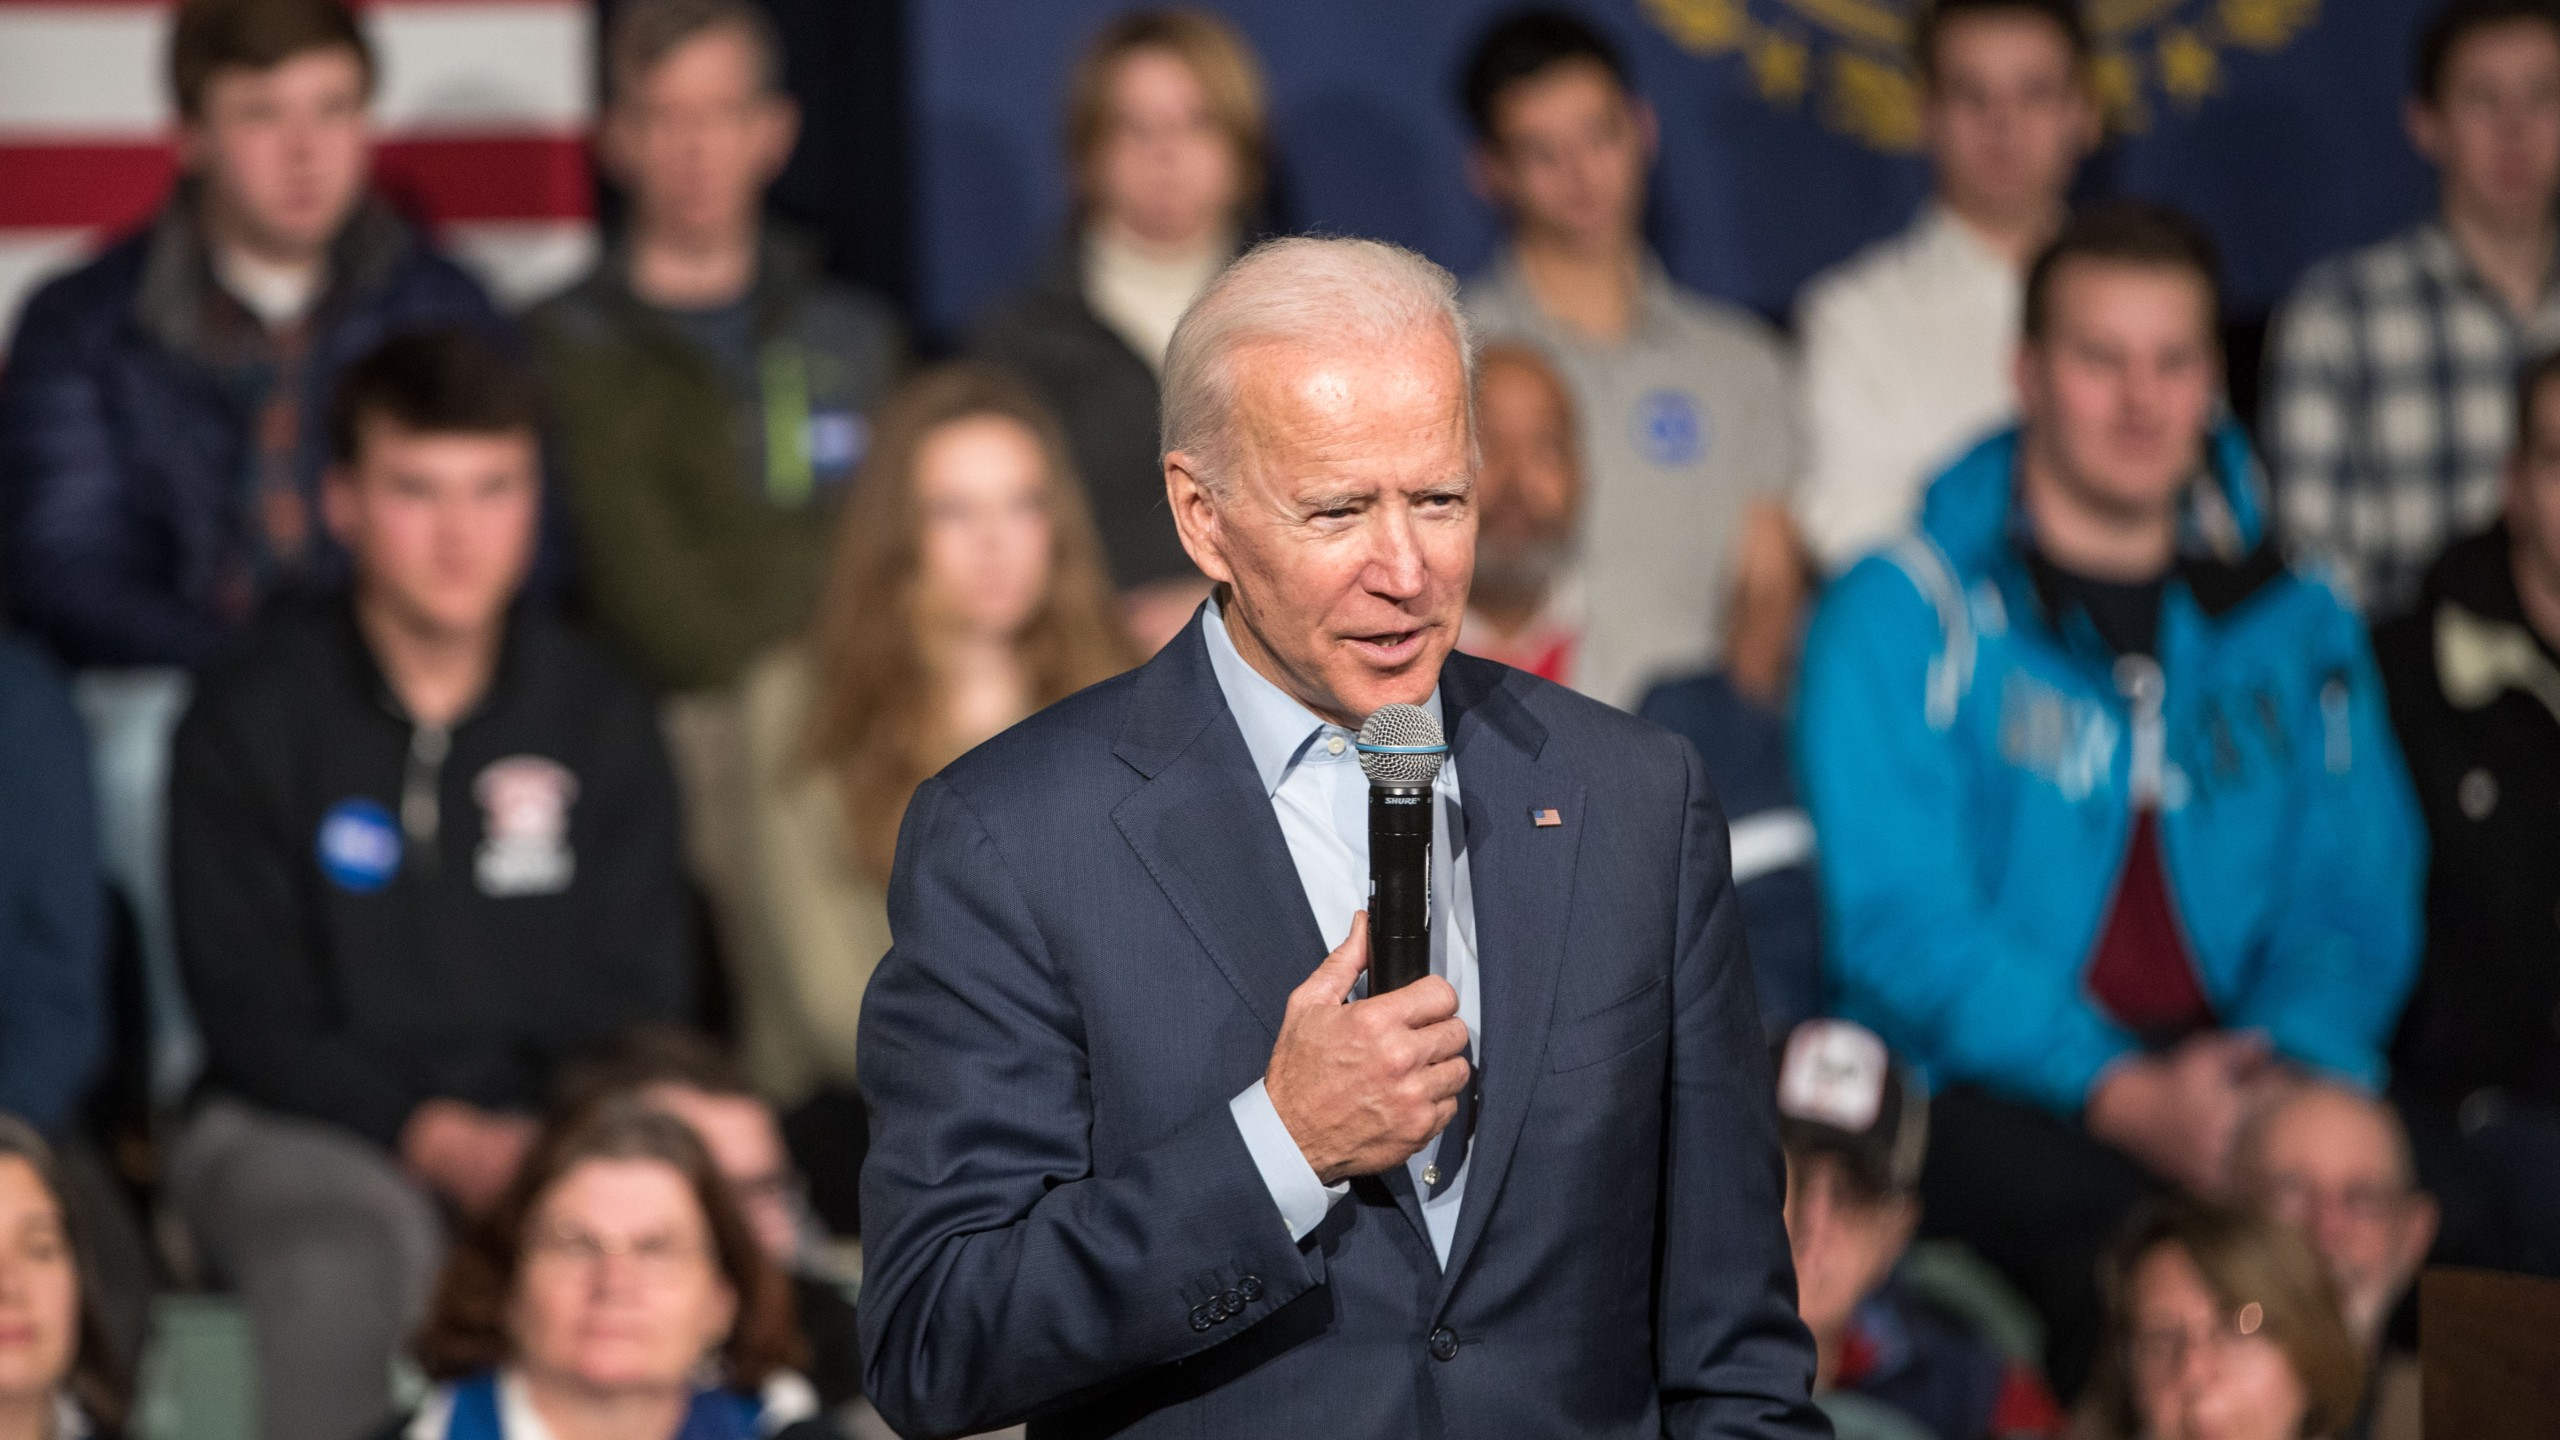 Democratic presidential candidate, former Vice President Joe Biden speaks during a campaign town hall on Dec. 30, 2019 in Exeter, New Hampshire. (Credit: Scott Eisen/Getty Images)